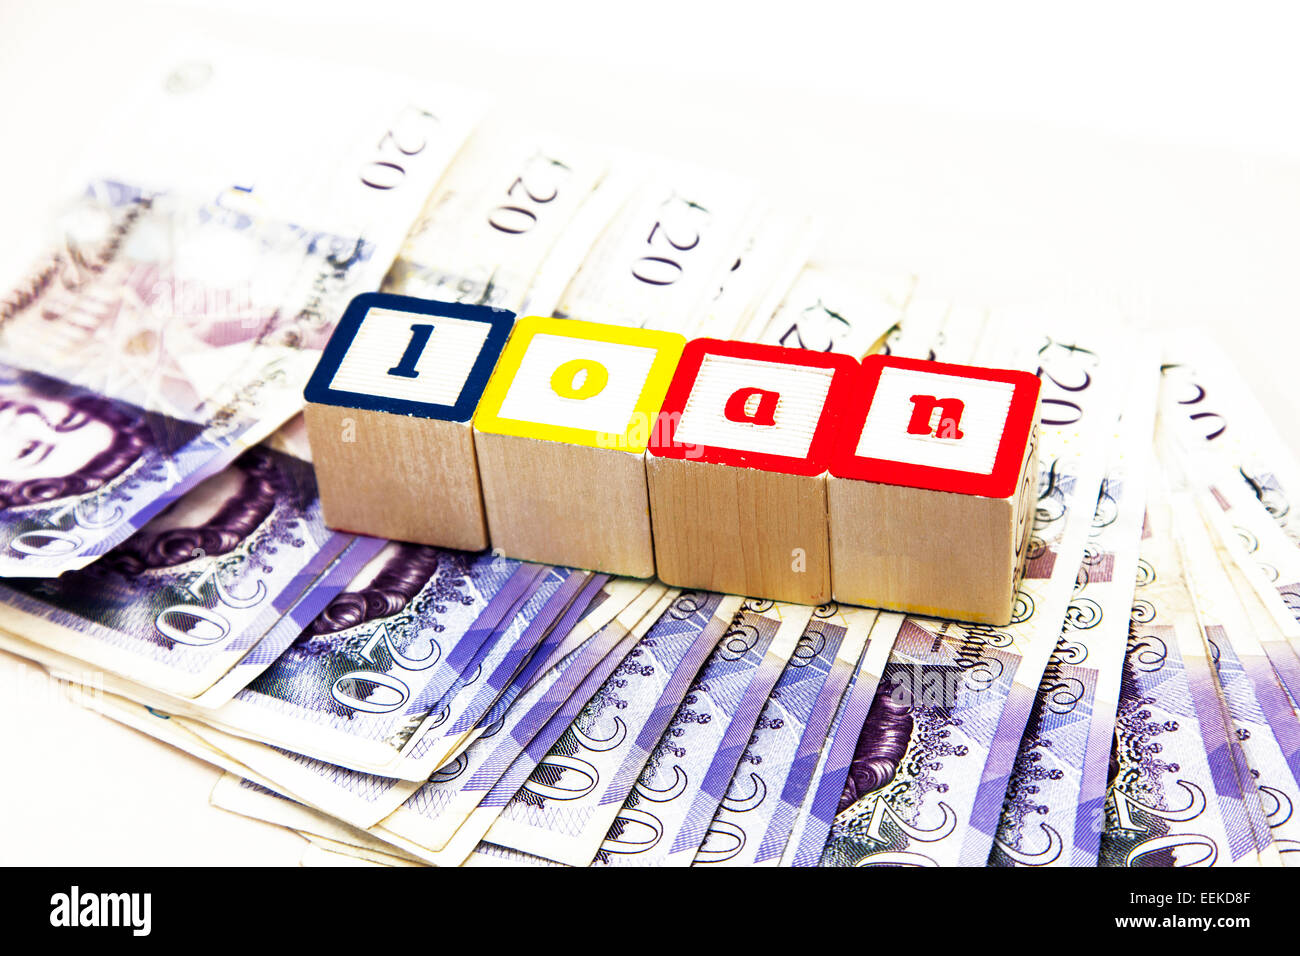 Loan money shark cash debt lend loaning borrow borrowing lending interest rates cut out copy space white background - Stock Image